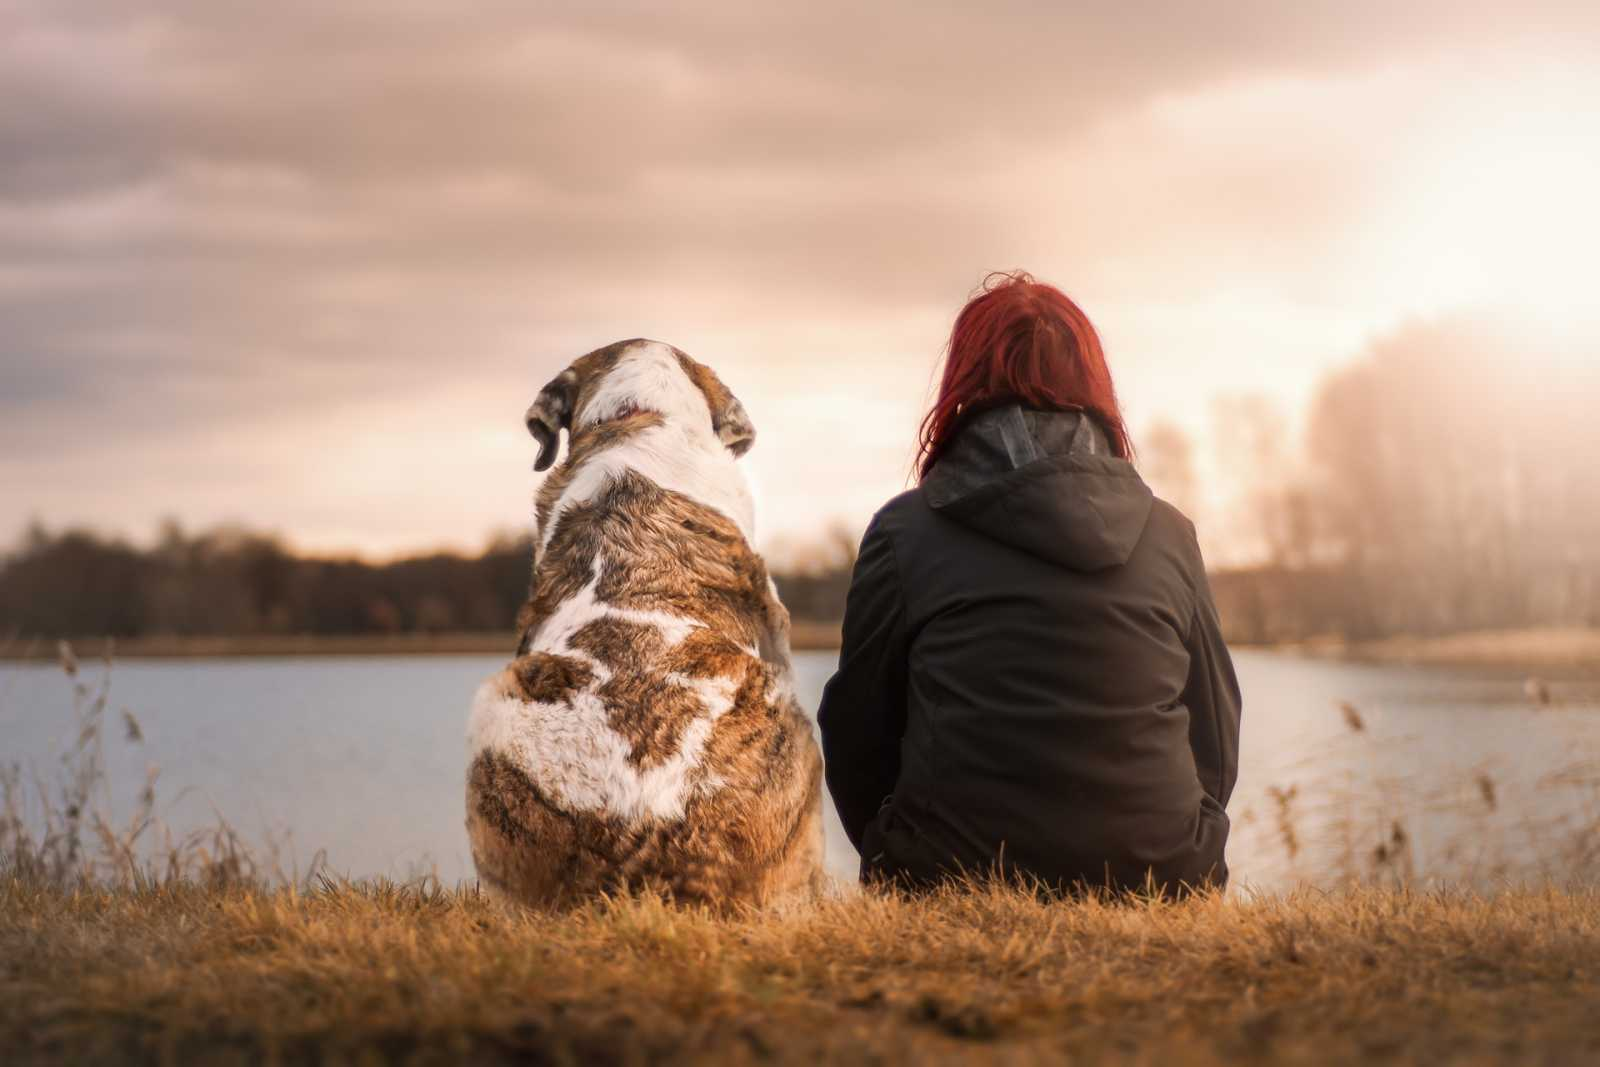 Some sits with a dog near a lake